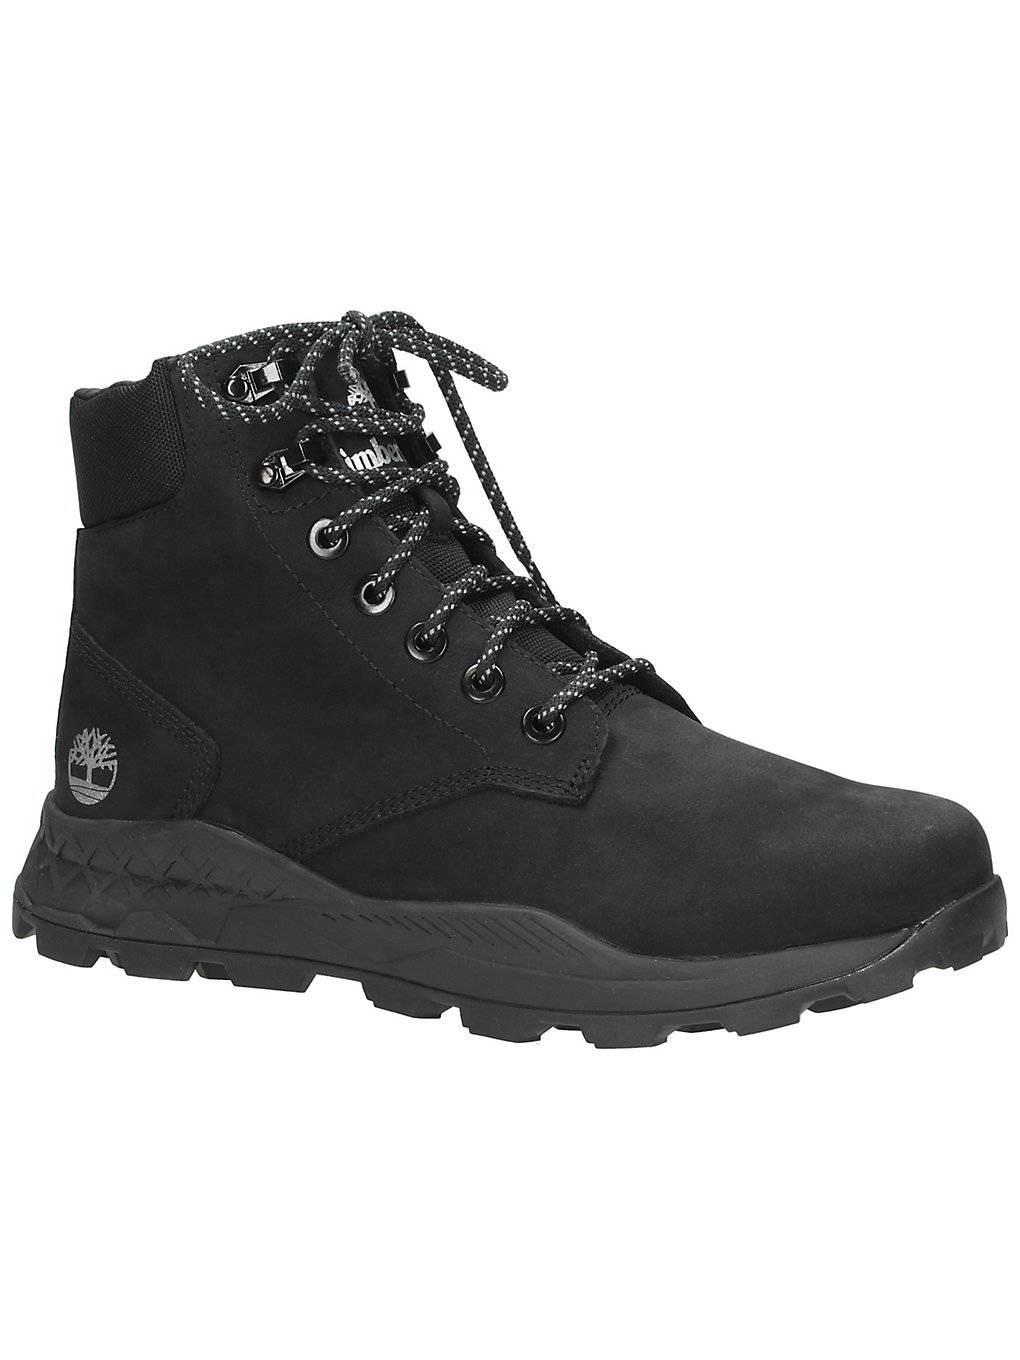 Timberland Brooklyn 6 Inch Shoes  : black nubuck - Size: 8.5 US